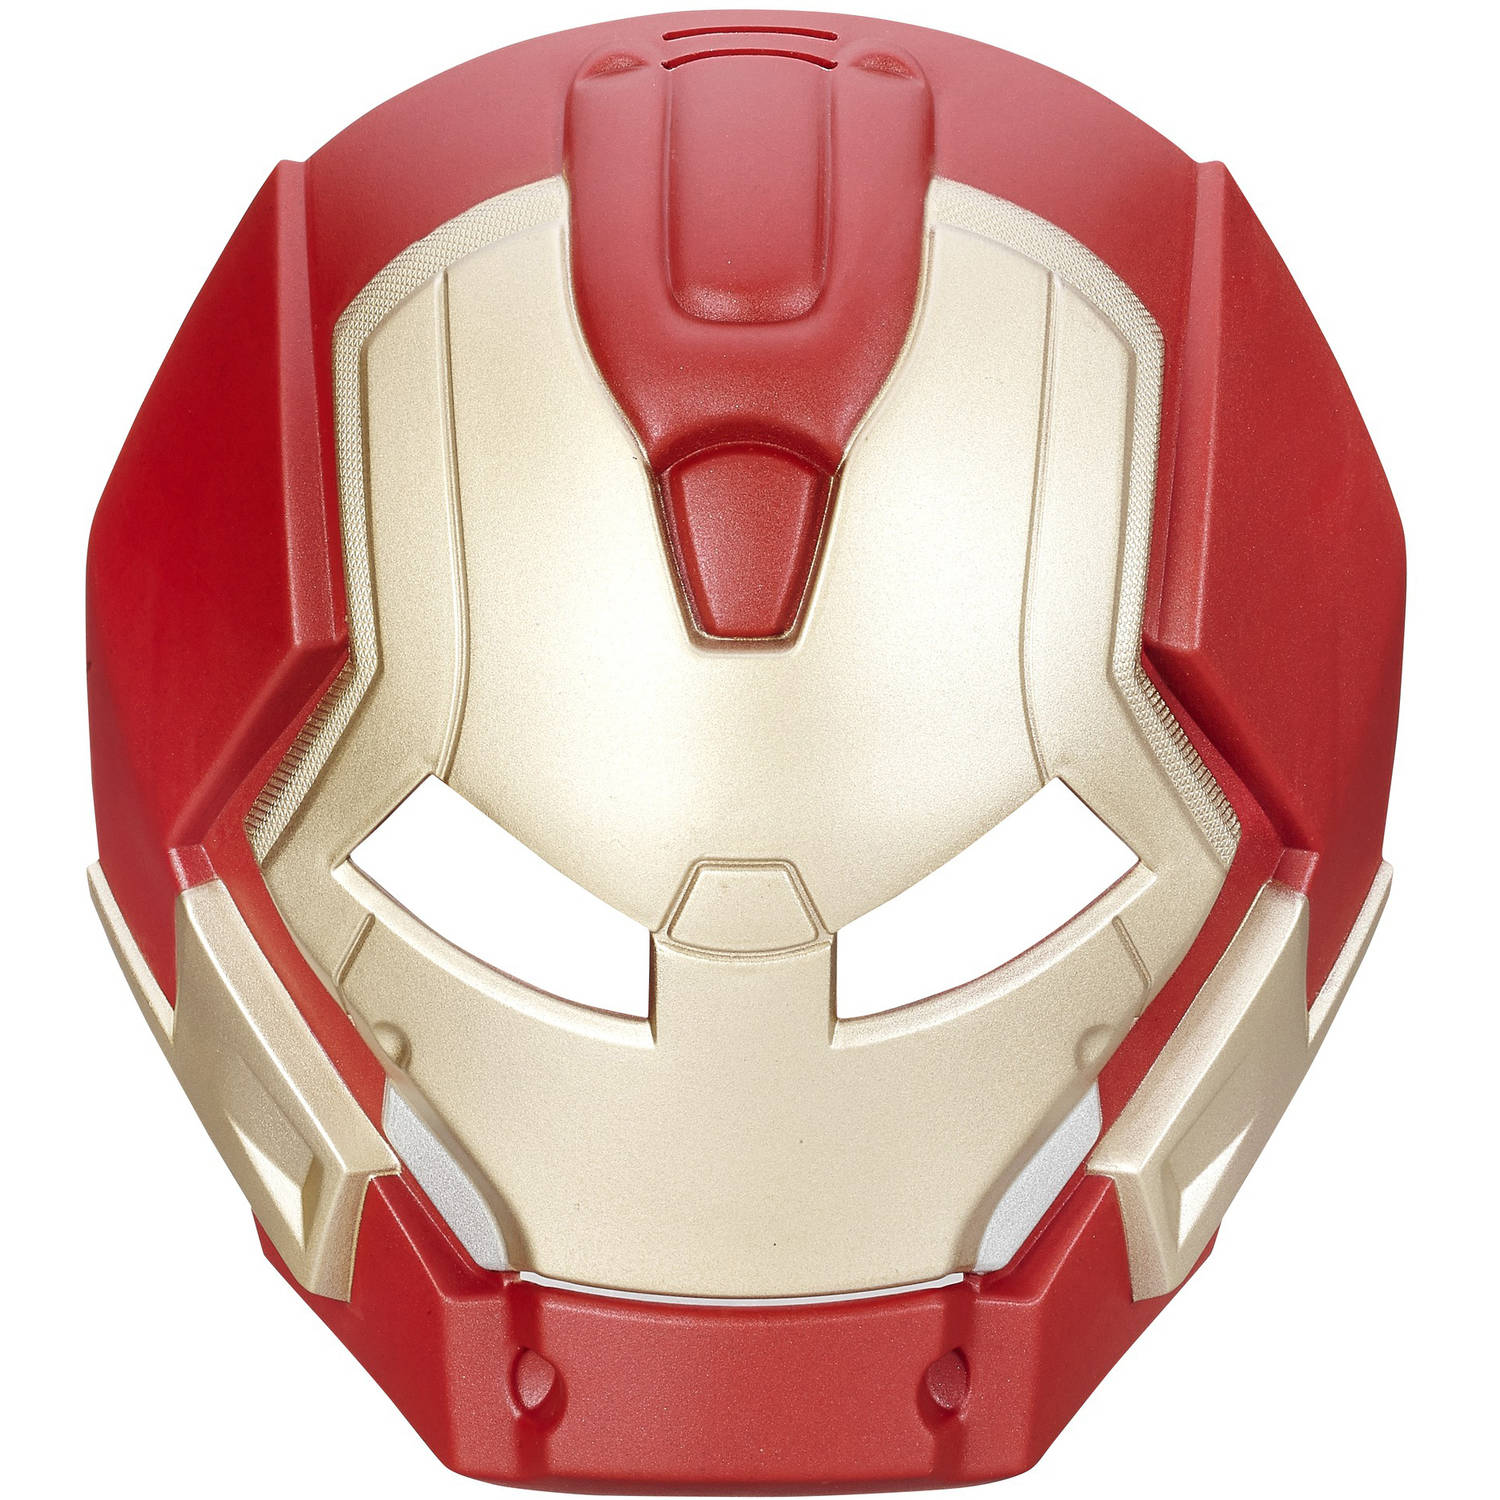 Marvel Avengers Age of Ultron Hulkbuster Mask